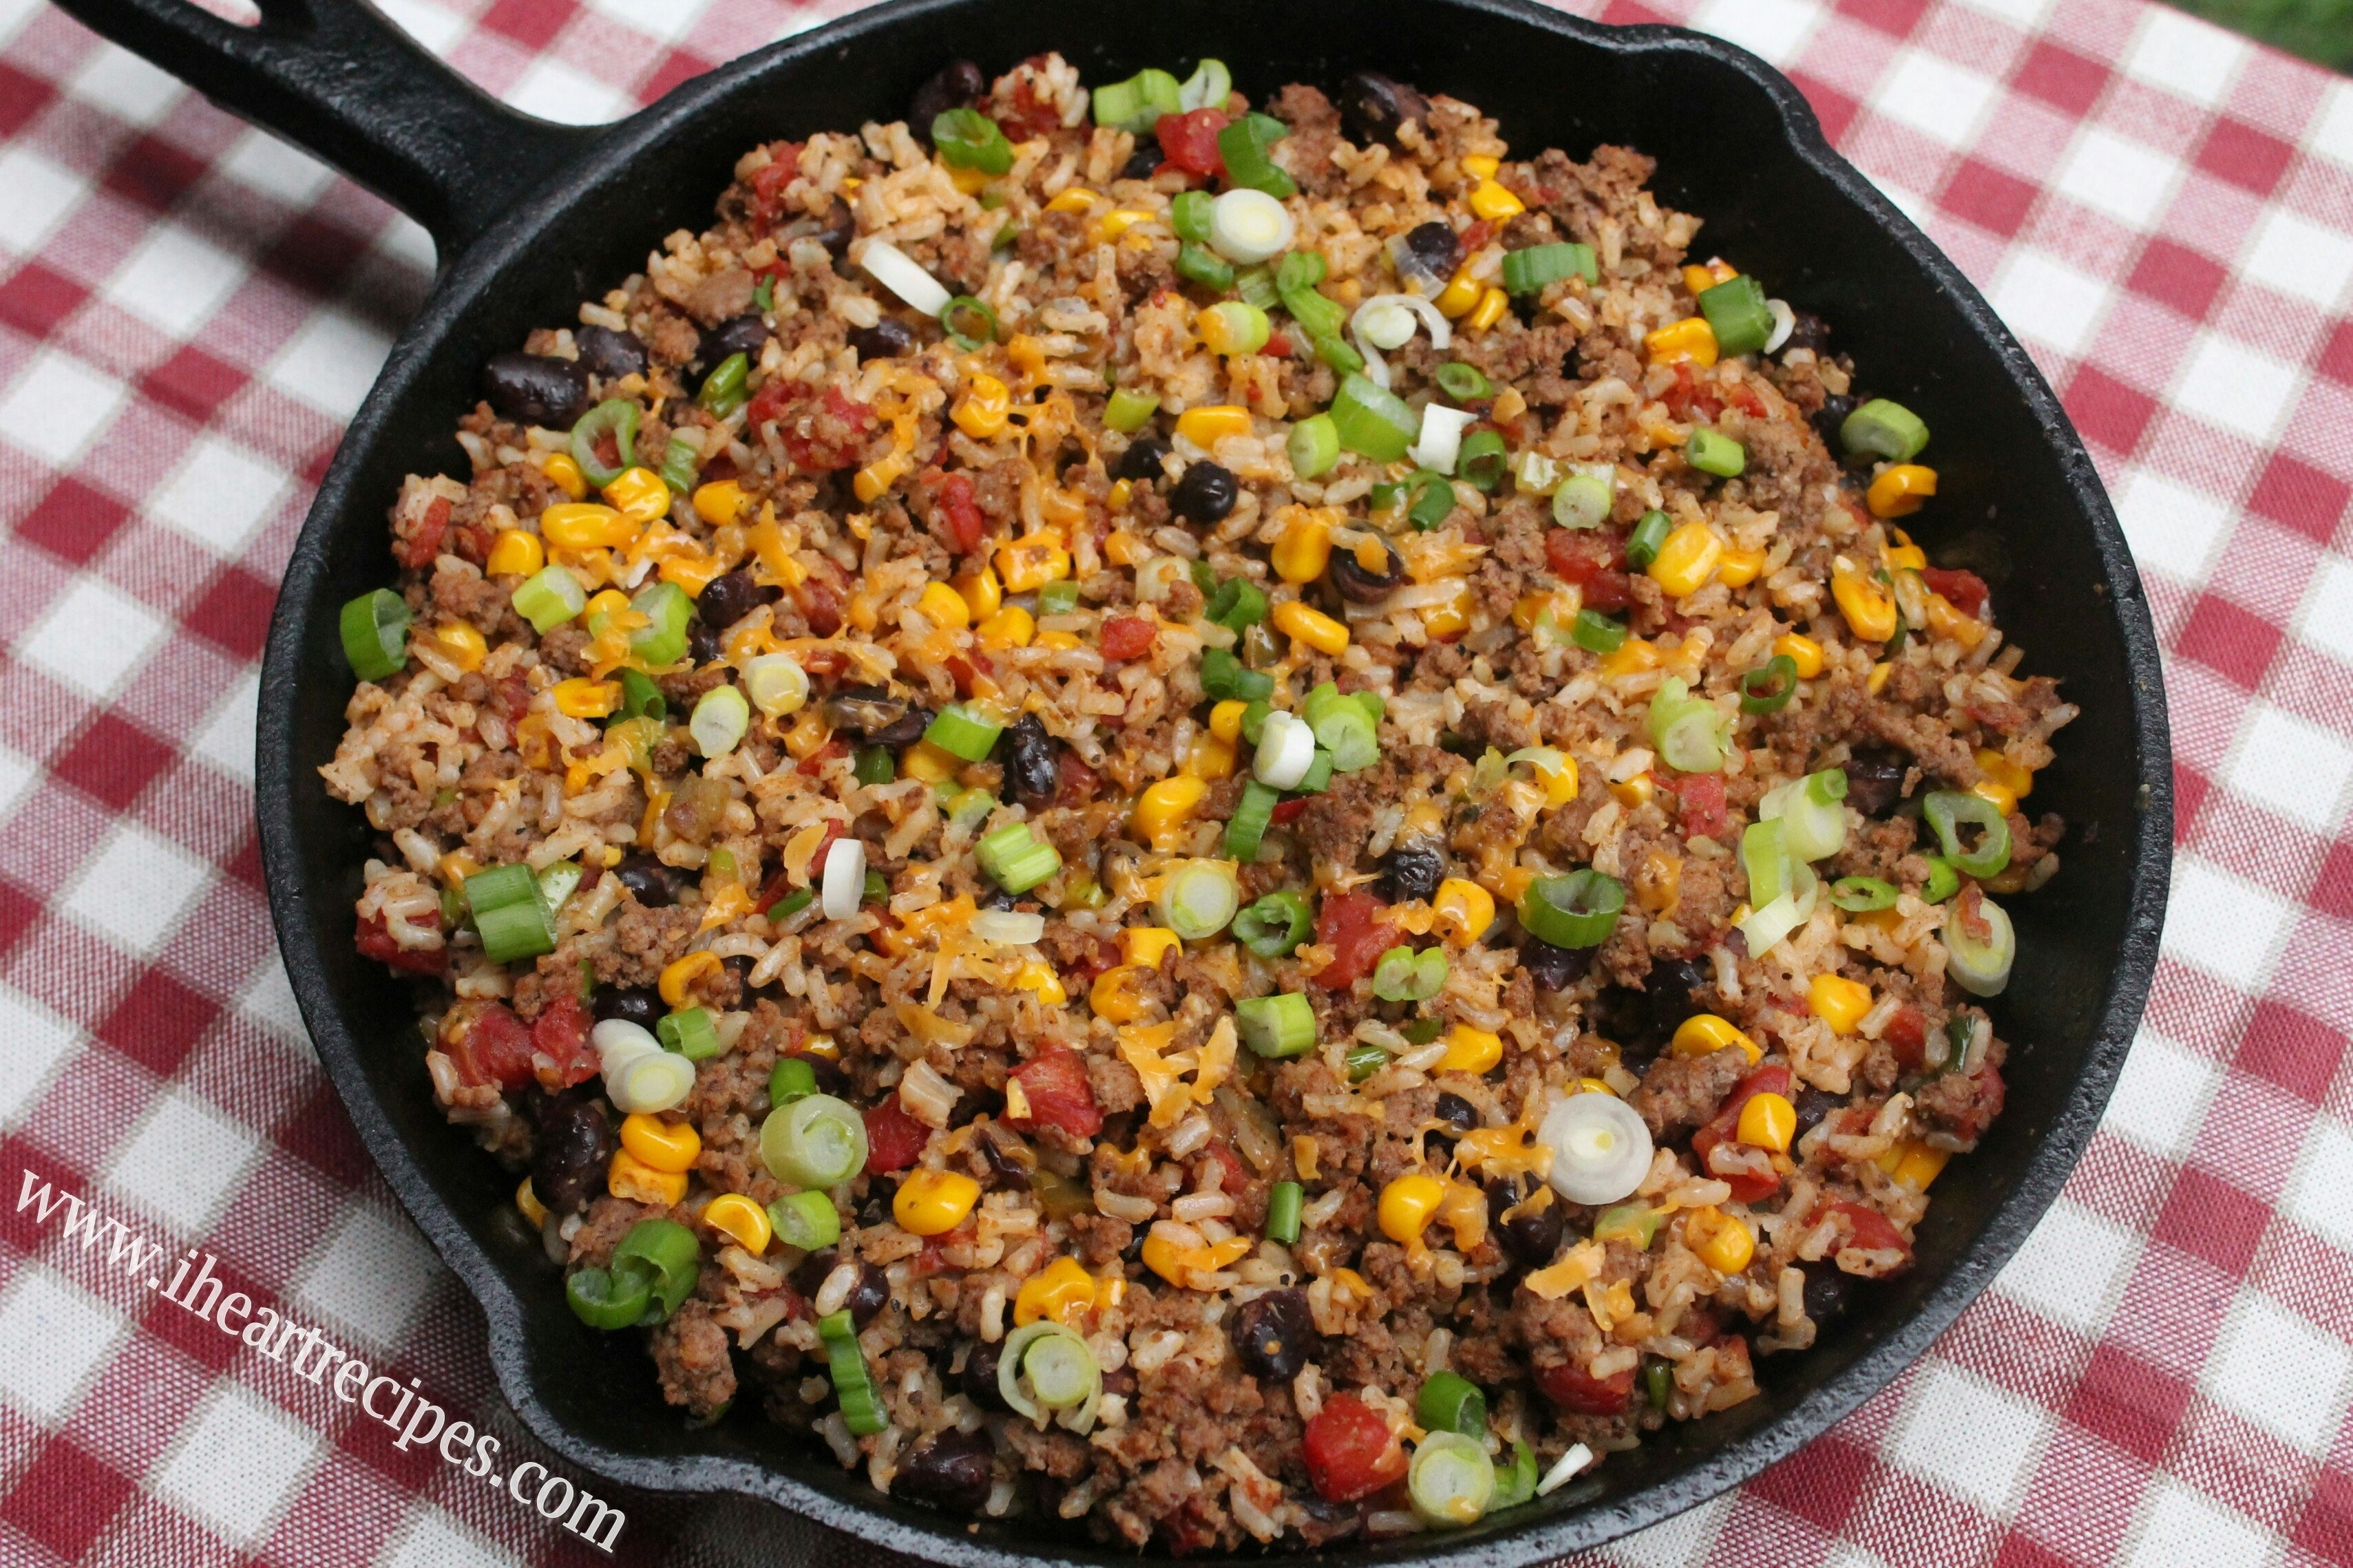 10 Most Recommended Meal Ideas For Ground Beef tex mex beef skillet i heart recipes 19 2020